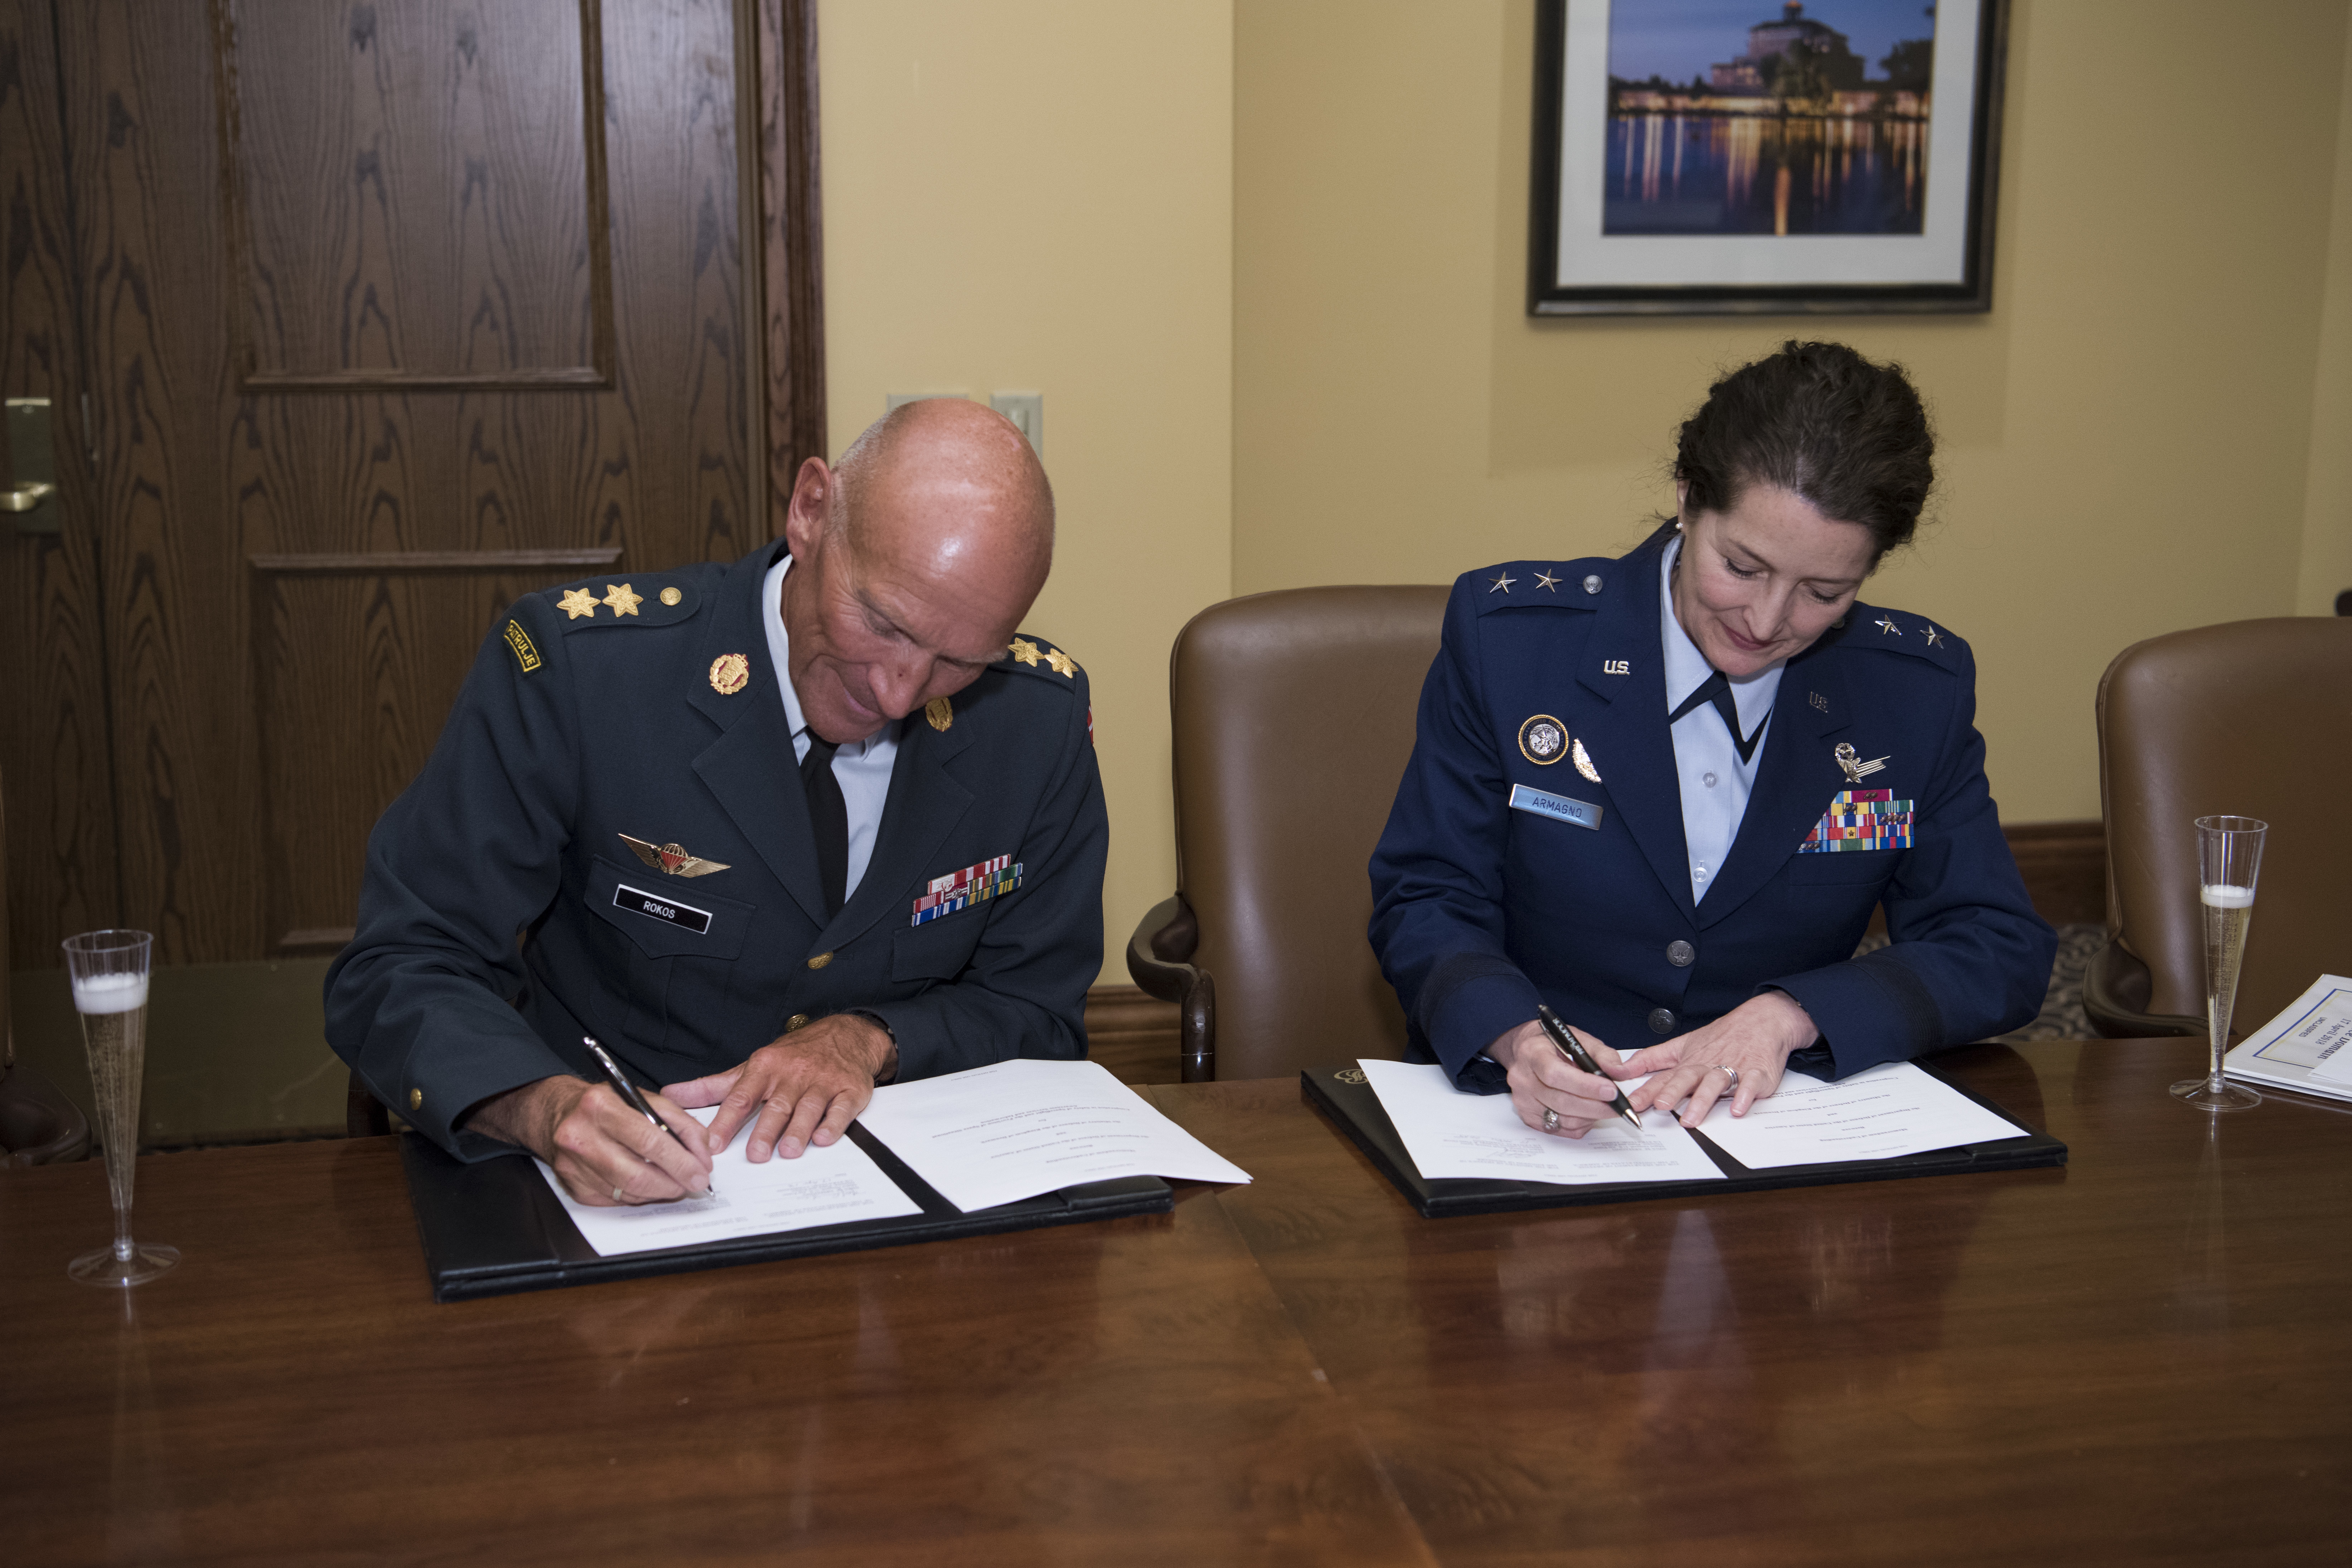 U.S. Air Force Maj. Gen. Nina Armagno (right), U.S. Strategic Command (USSTRATCOM) director of plans and policy, signs a memorandum of understanding at the 34th Annual Space Symposium Apr. 17, 2018, with Maj. Gen. Agner Rokos, representing the Defence Command Denmark and the Ministry of Defence Denmark. The memorandum authorizes sharing space situational awareness services and information with the Defence Command and Ministry of Defence for Denmark. Denmark joins 13 nations (the United Kingdom, the Republic of Korea, France, Canada, Italy, Japan, Israel, Spain, Germany, Australia, the United Arab Emirates, Belgium and Norway), two intergovernmental organizations (the European Space Agency and the European Organization for the Exploitation of Meteorological Satellites) and more than 65 commercial satellite owner/operator/launchers already participating in SSA data-sharing agreements with USSTRATCOM. (U.S. Air Force photo by Dave Grim)